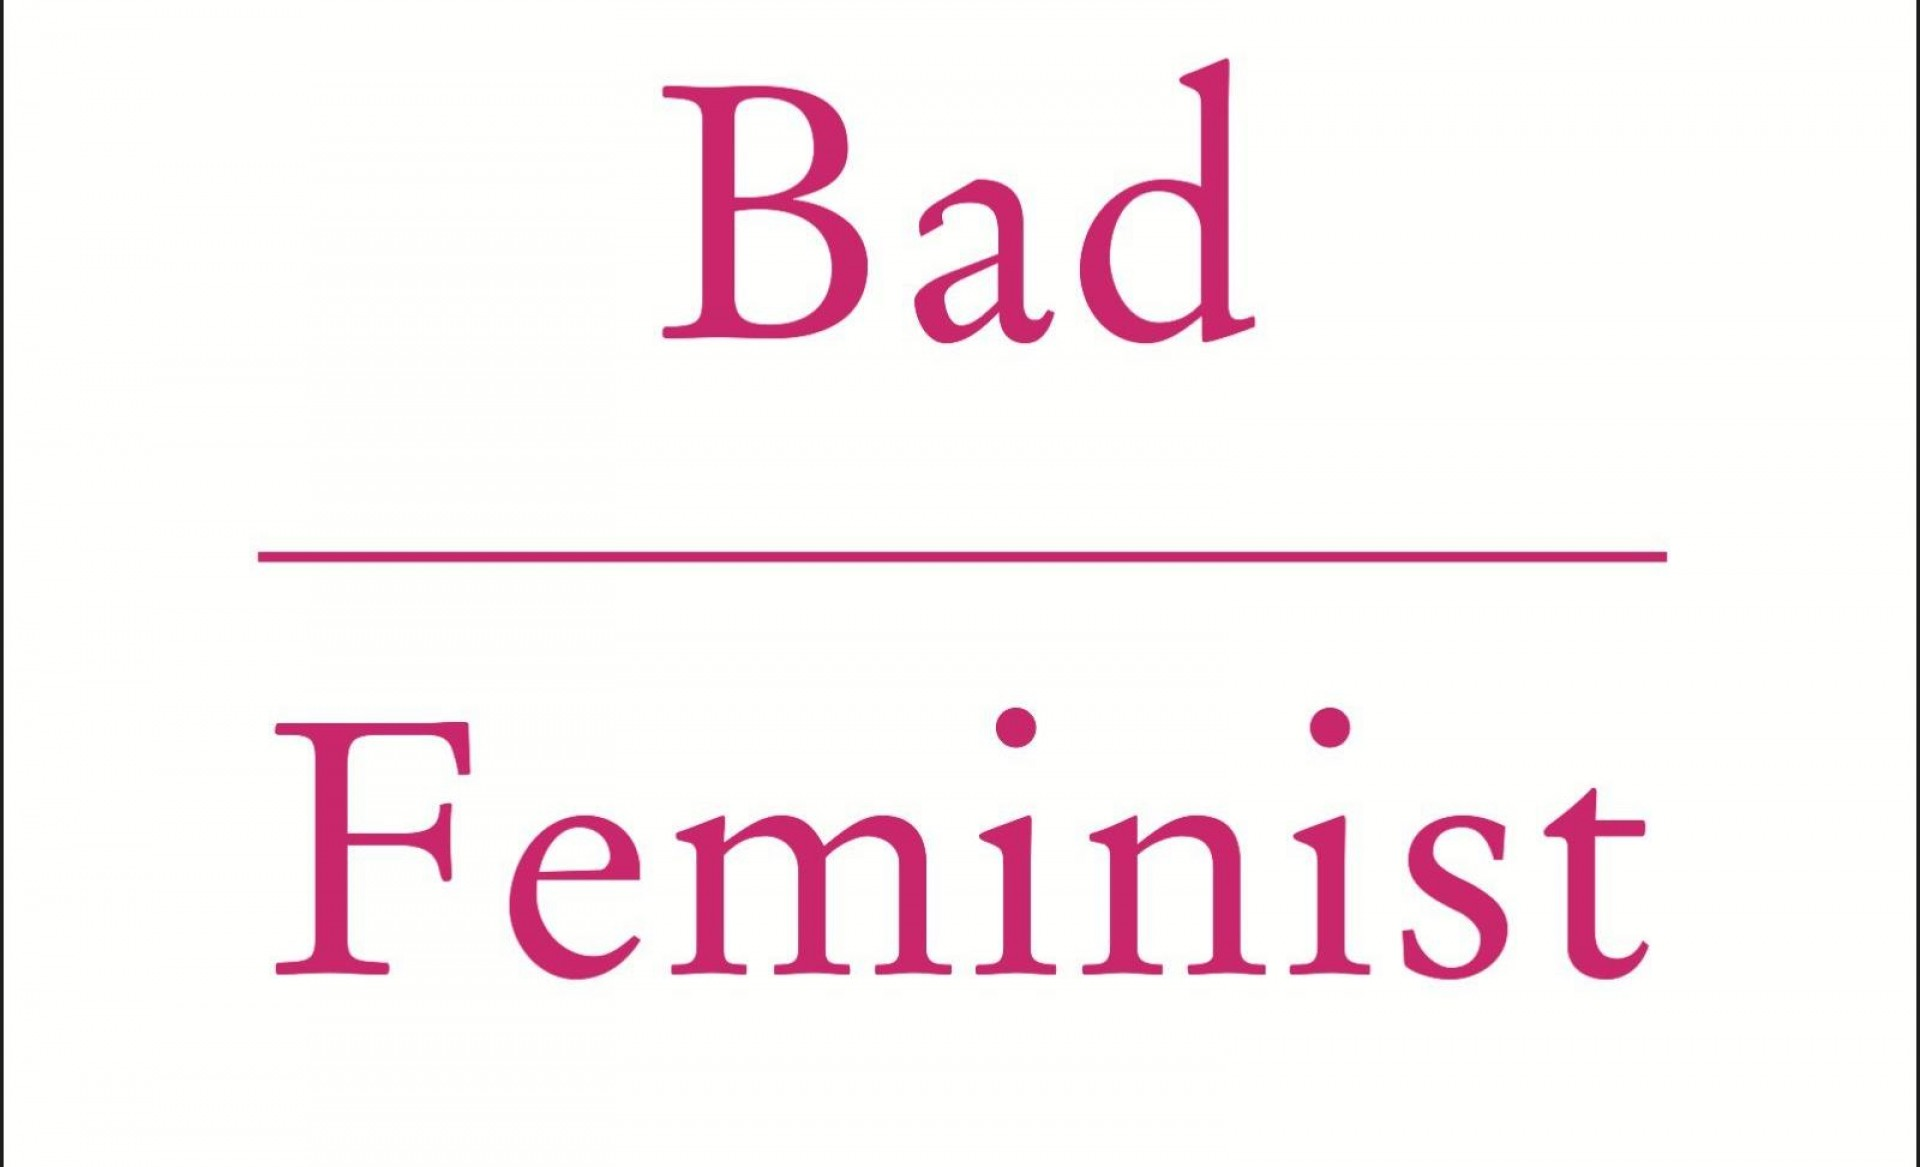 013 Feminist Essays Essay Incredible Bad Review Pdf Epub 1920